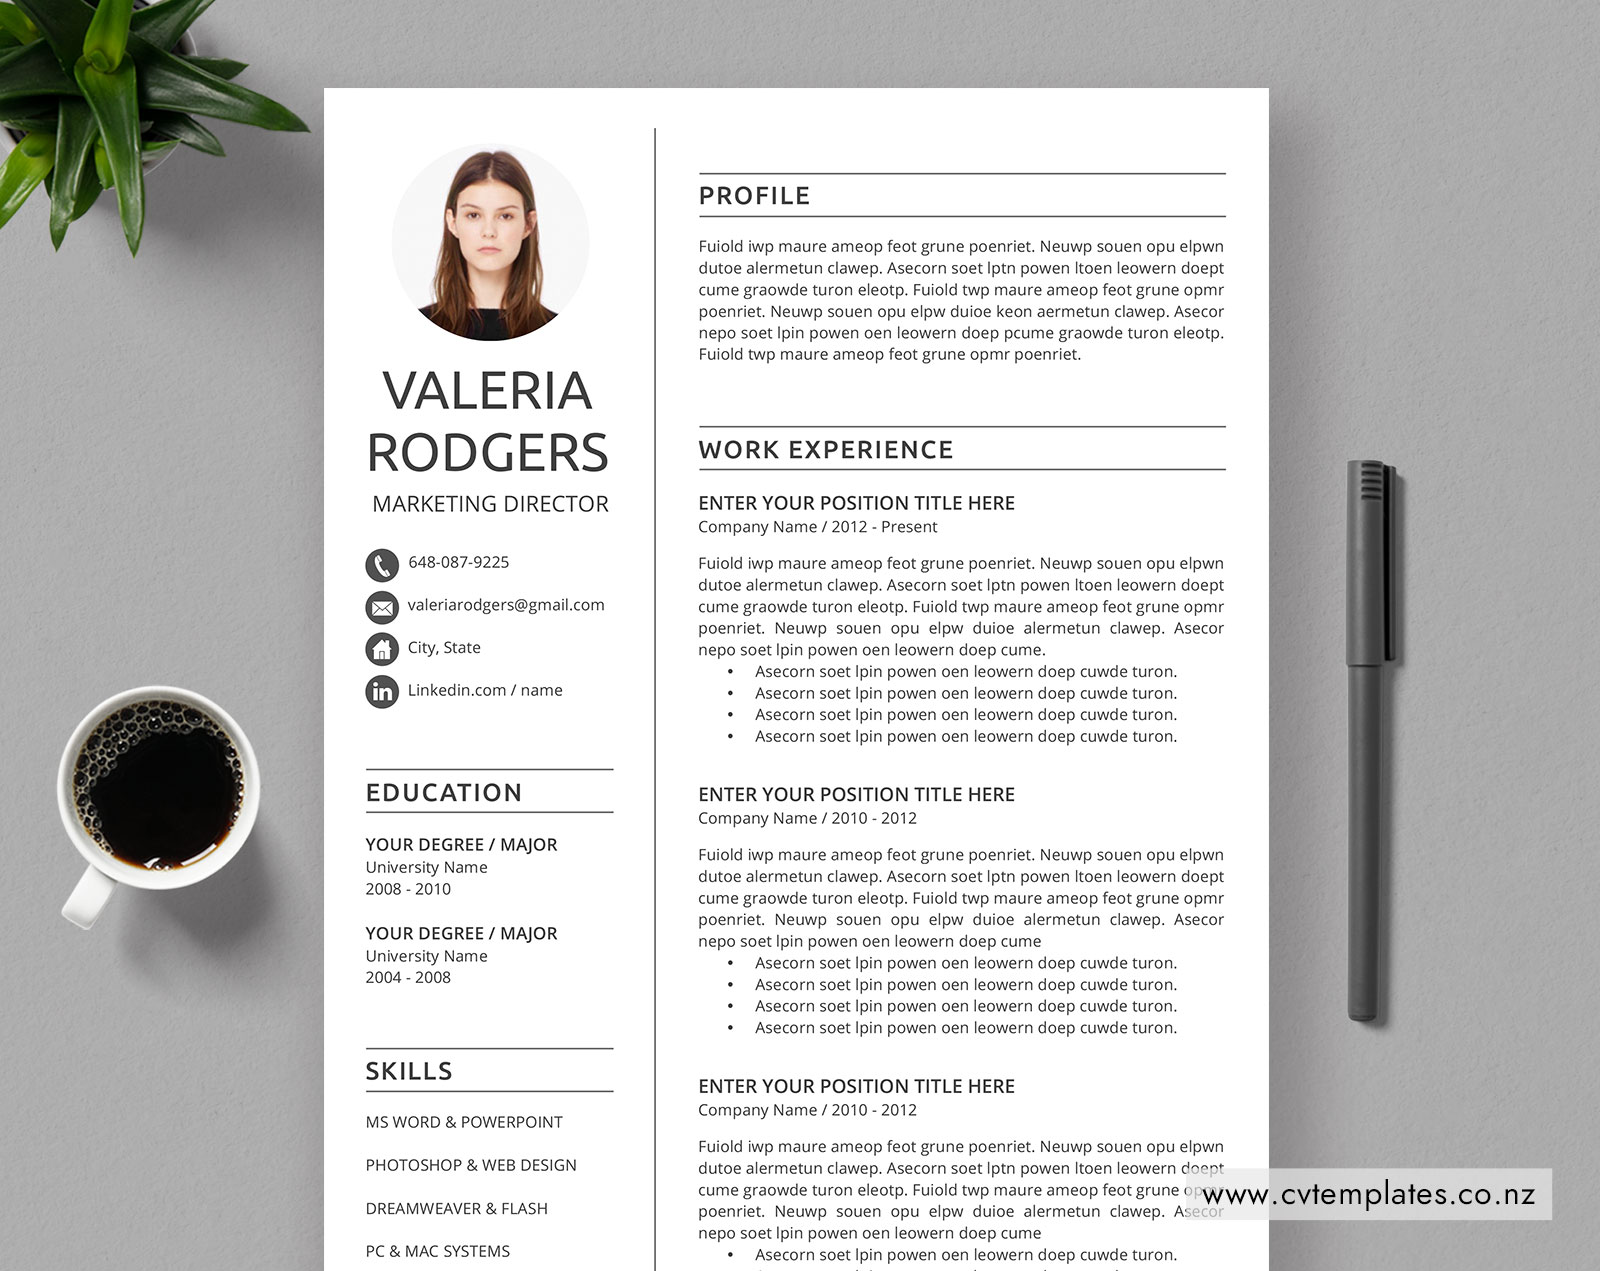 Cv Templates Bundle For Ms Word Curriculum Vitae Cover Letter